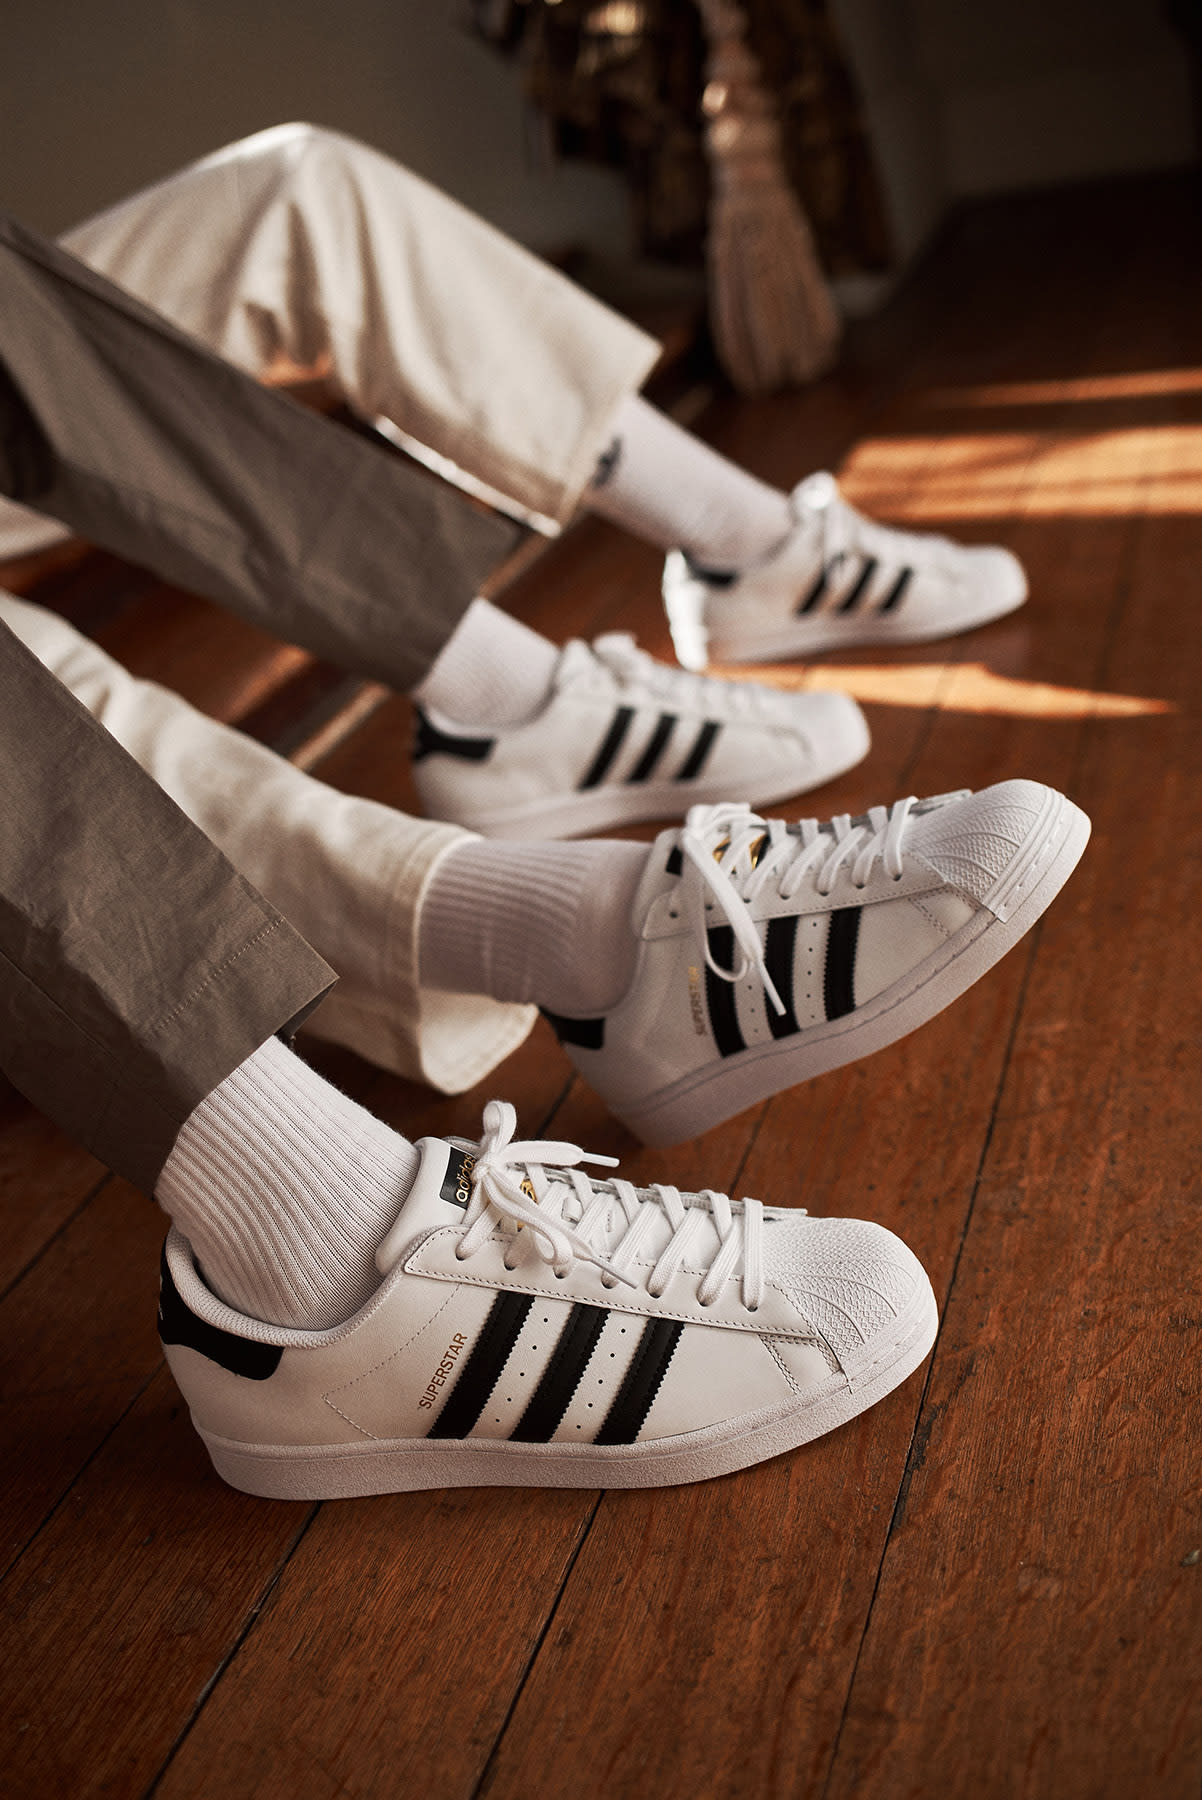 adidas Superstar: Change is a team sport editorial by END.